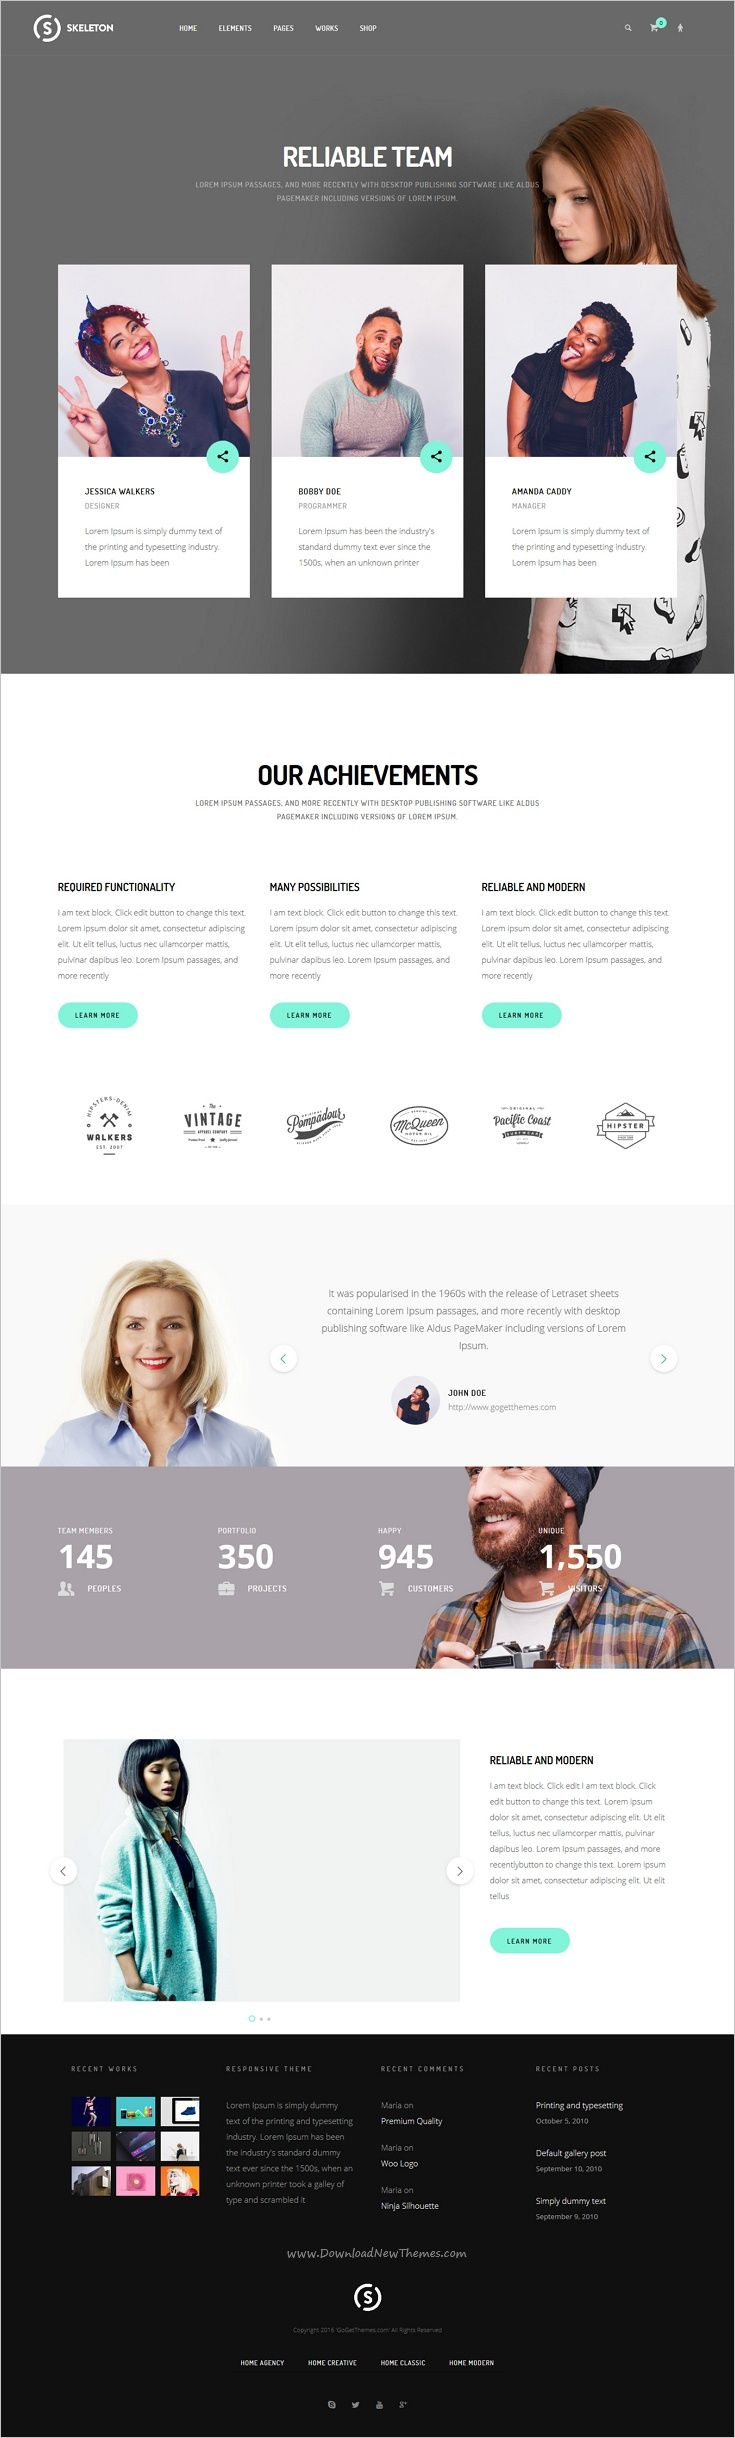 Skeleton is an awesome responsive multipurpose #WordPress theme for stunning #agency websites with 25+ unique homepage layouts and amazing features download now➩ https://themeforest.net/item/skeleton-wordpress-theme/17554719?ref=Datasata